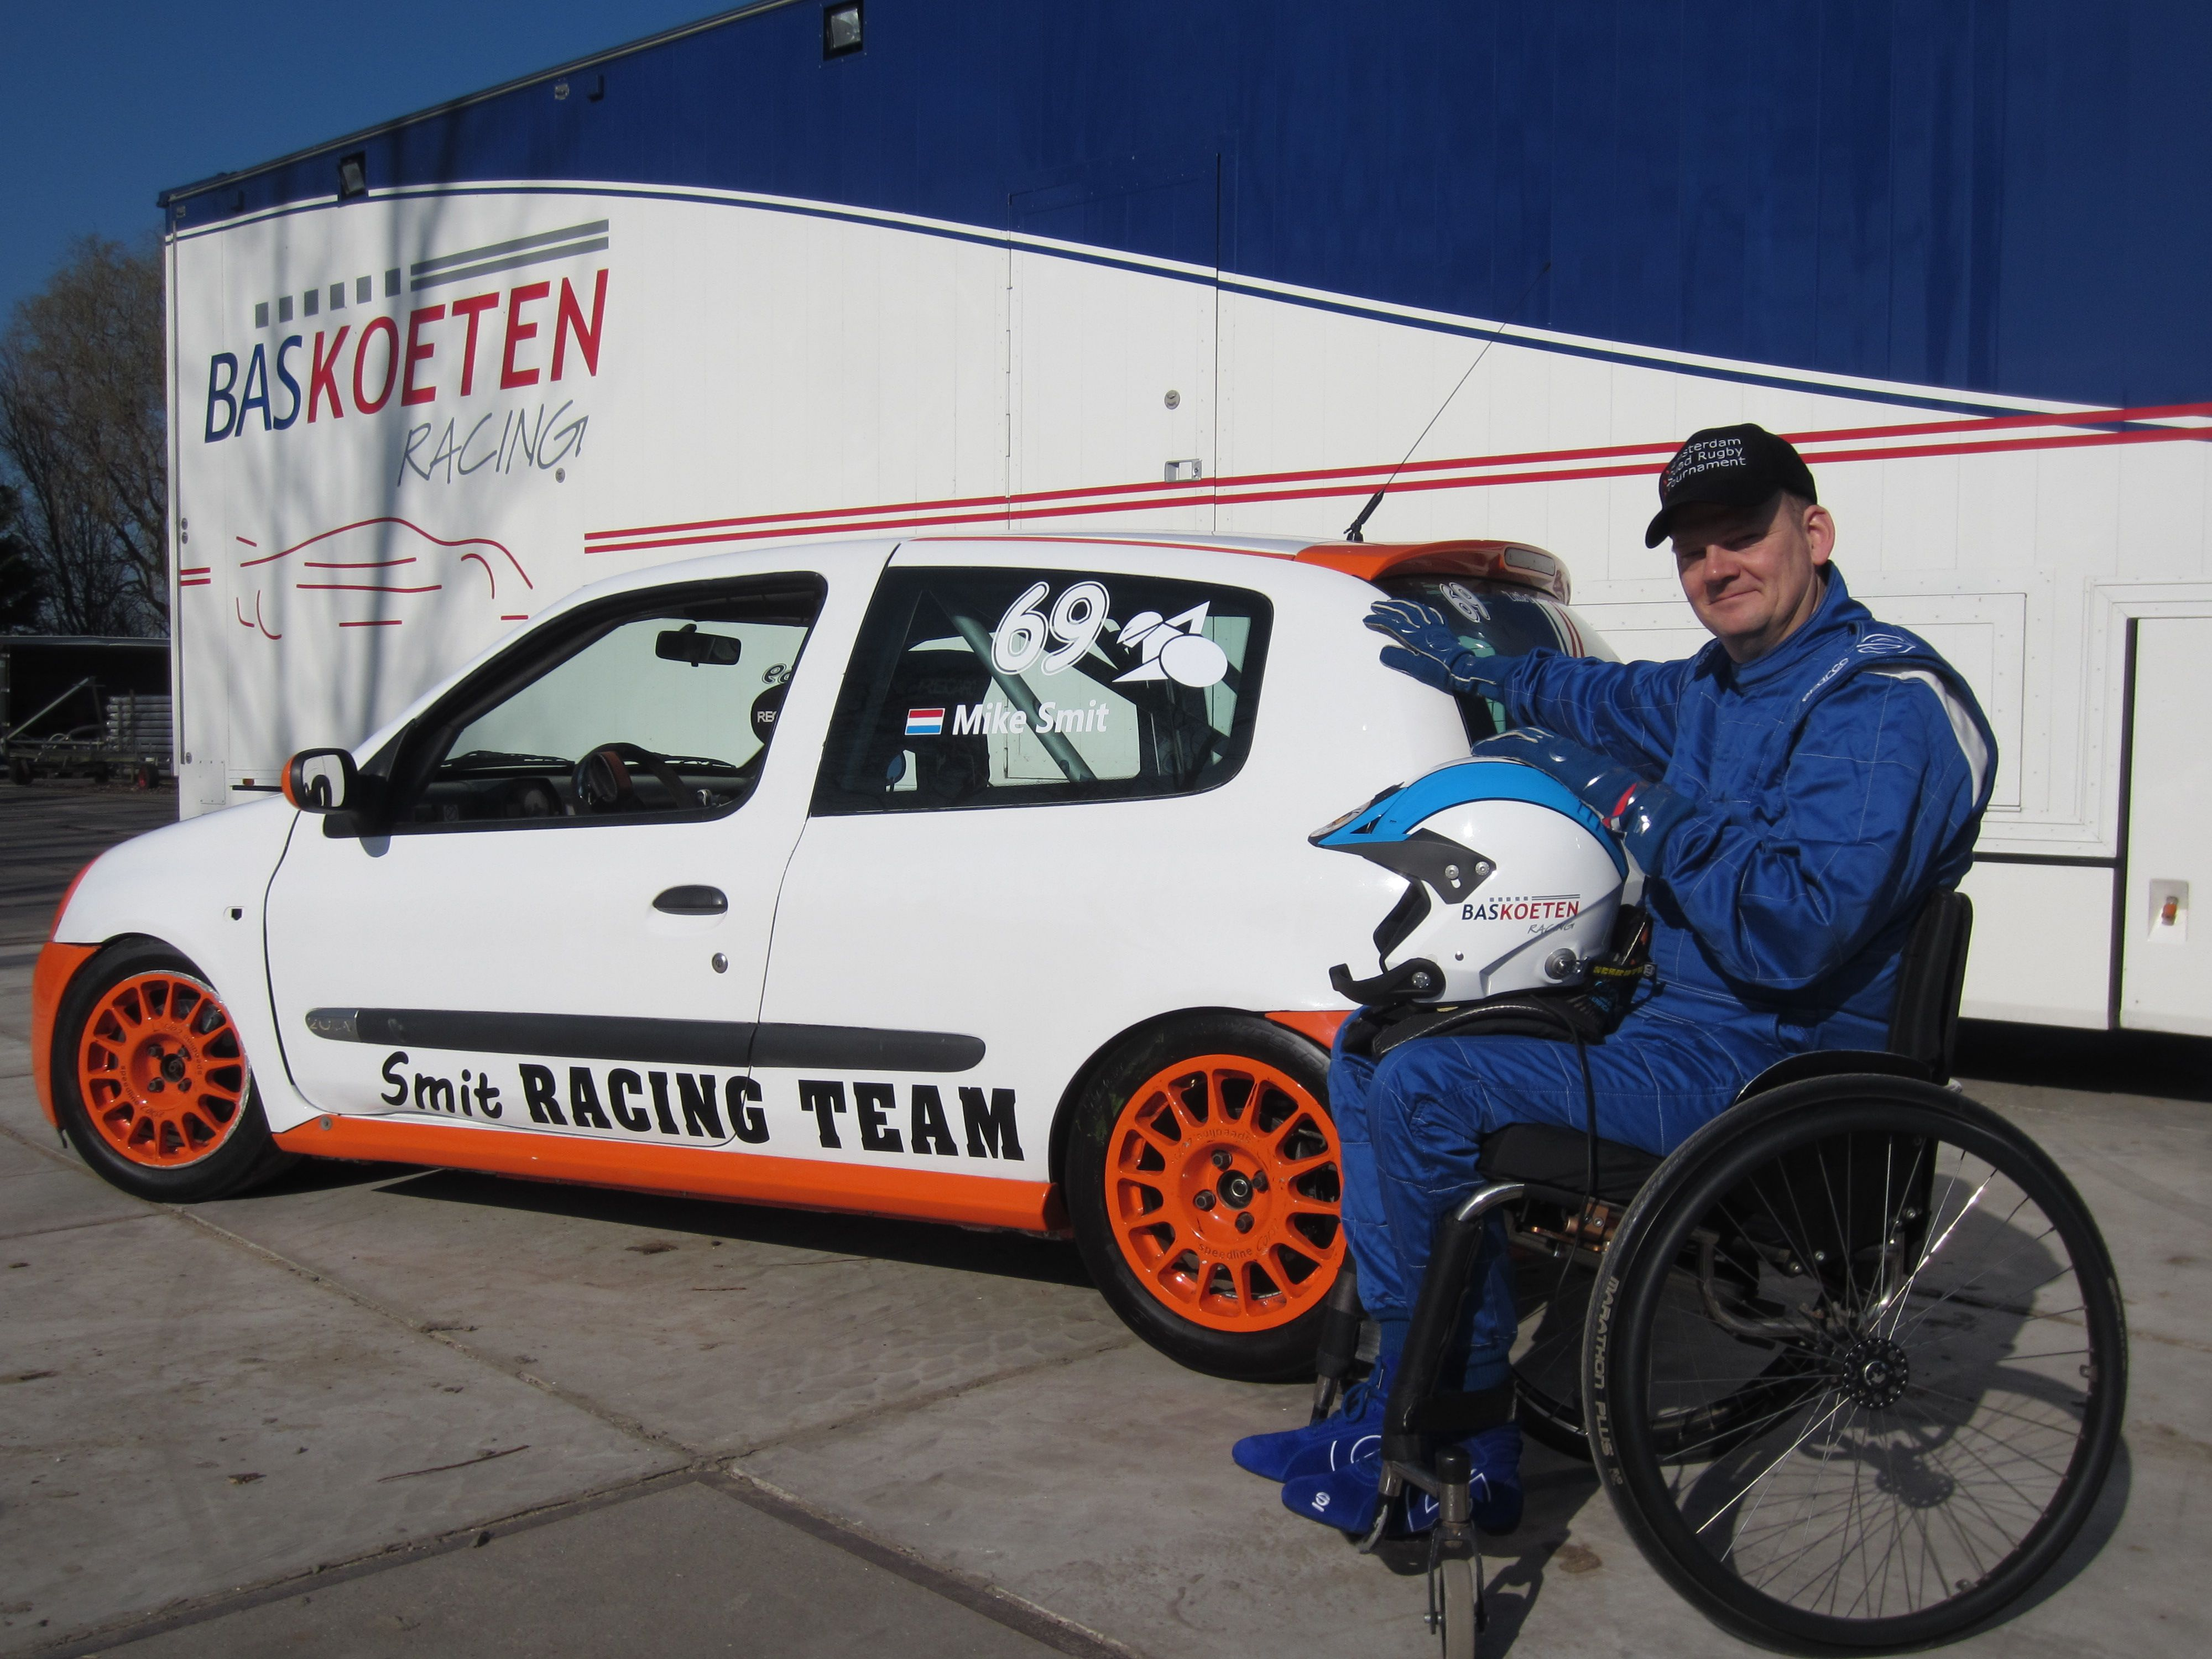 The racer of Smit Racing Team: Mike Smit